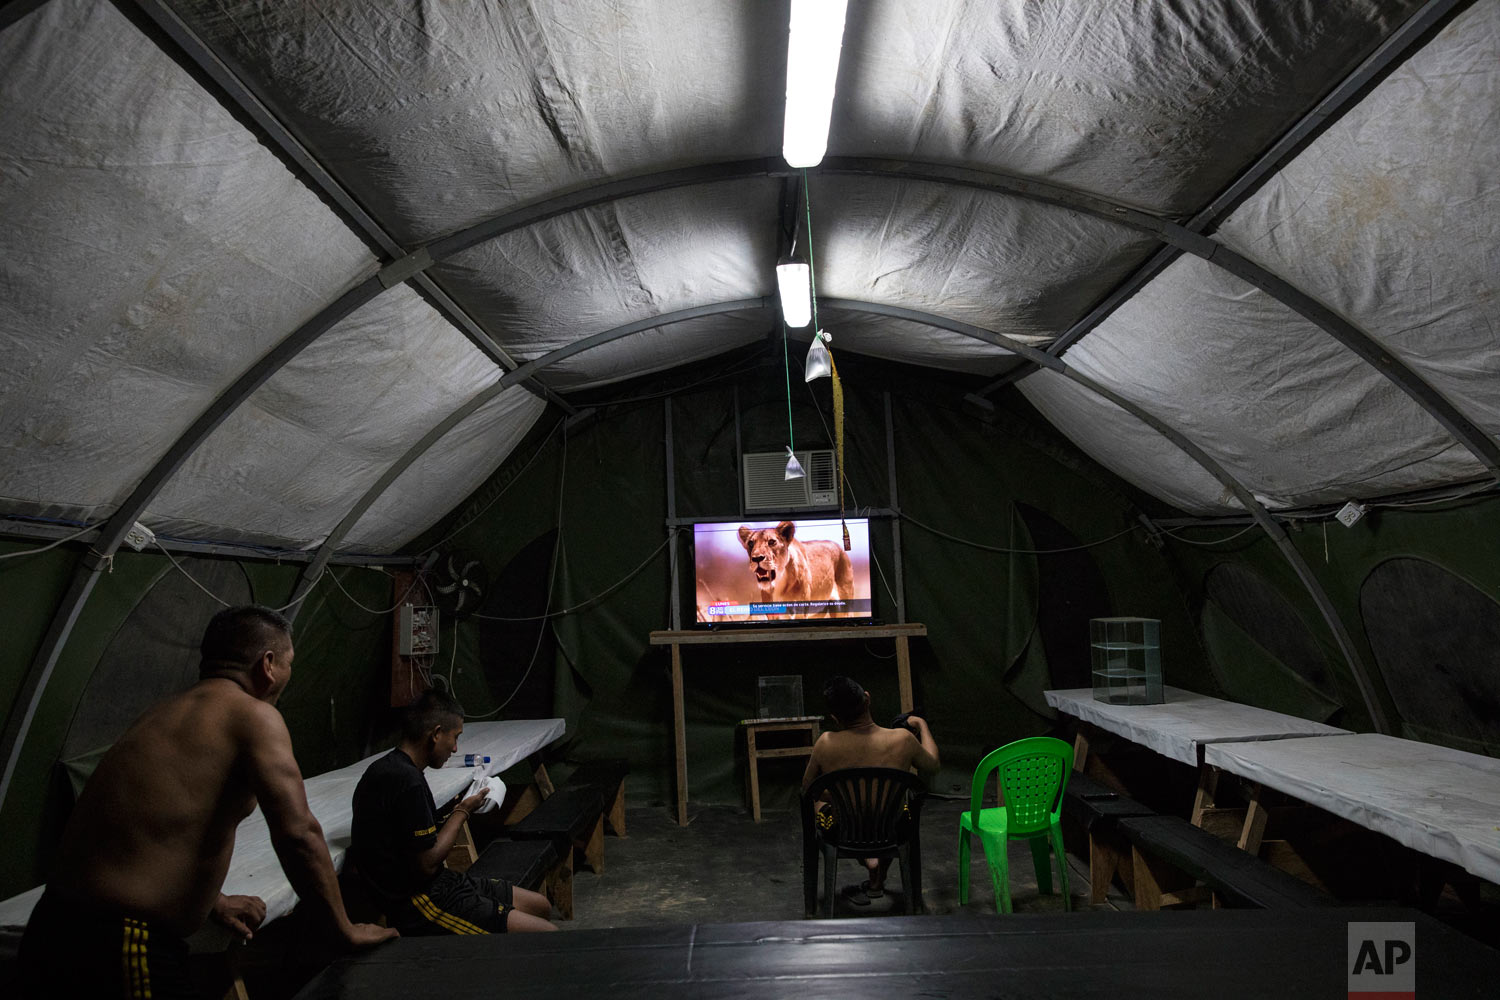 Soldiers watch a nature show in their tent at the Balata military and police base, March 31, 2019, in Peru's Tambopata province. The base is surrounded by two lakes contaminated with mercury, as well as debris left over by miners. (AP Photo/Rodrigo Abd)